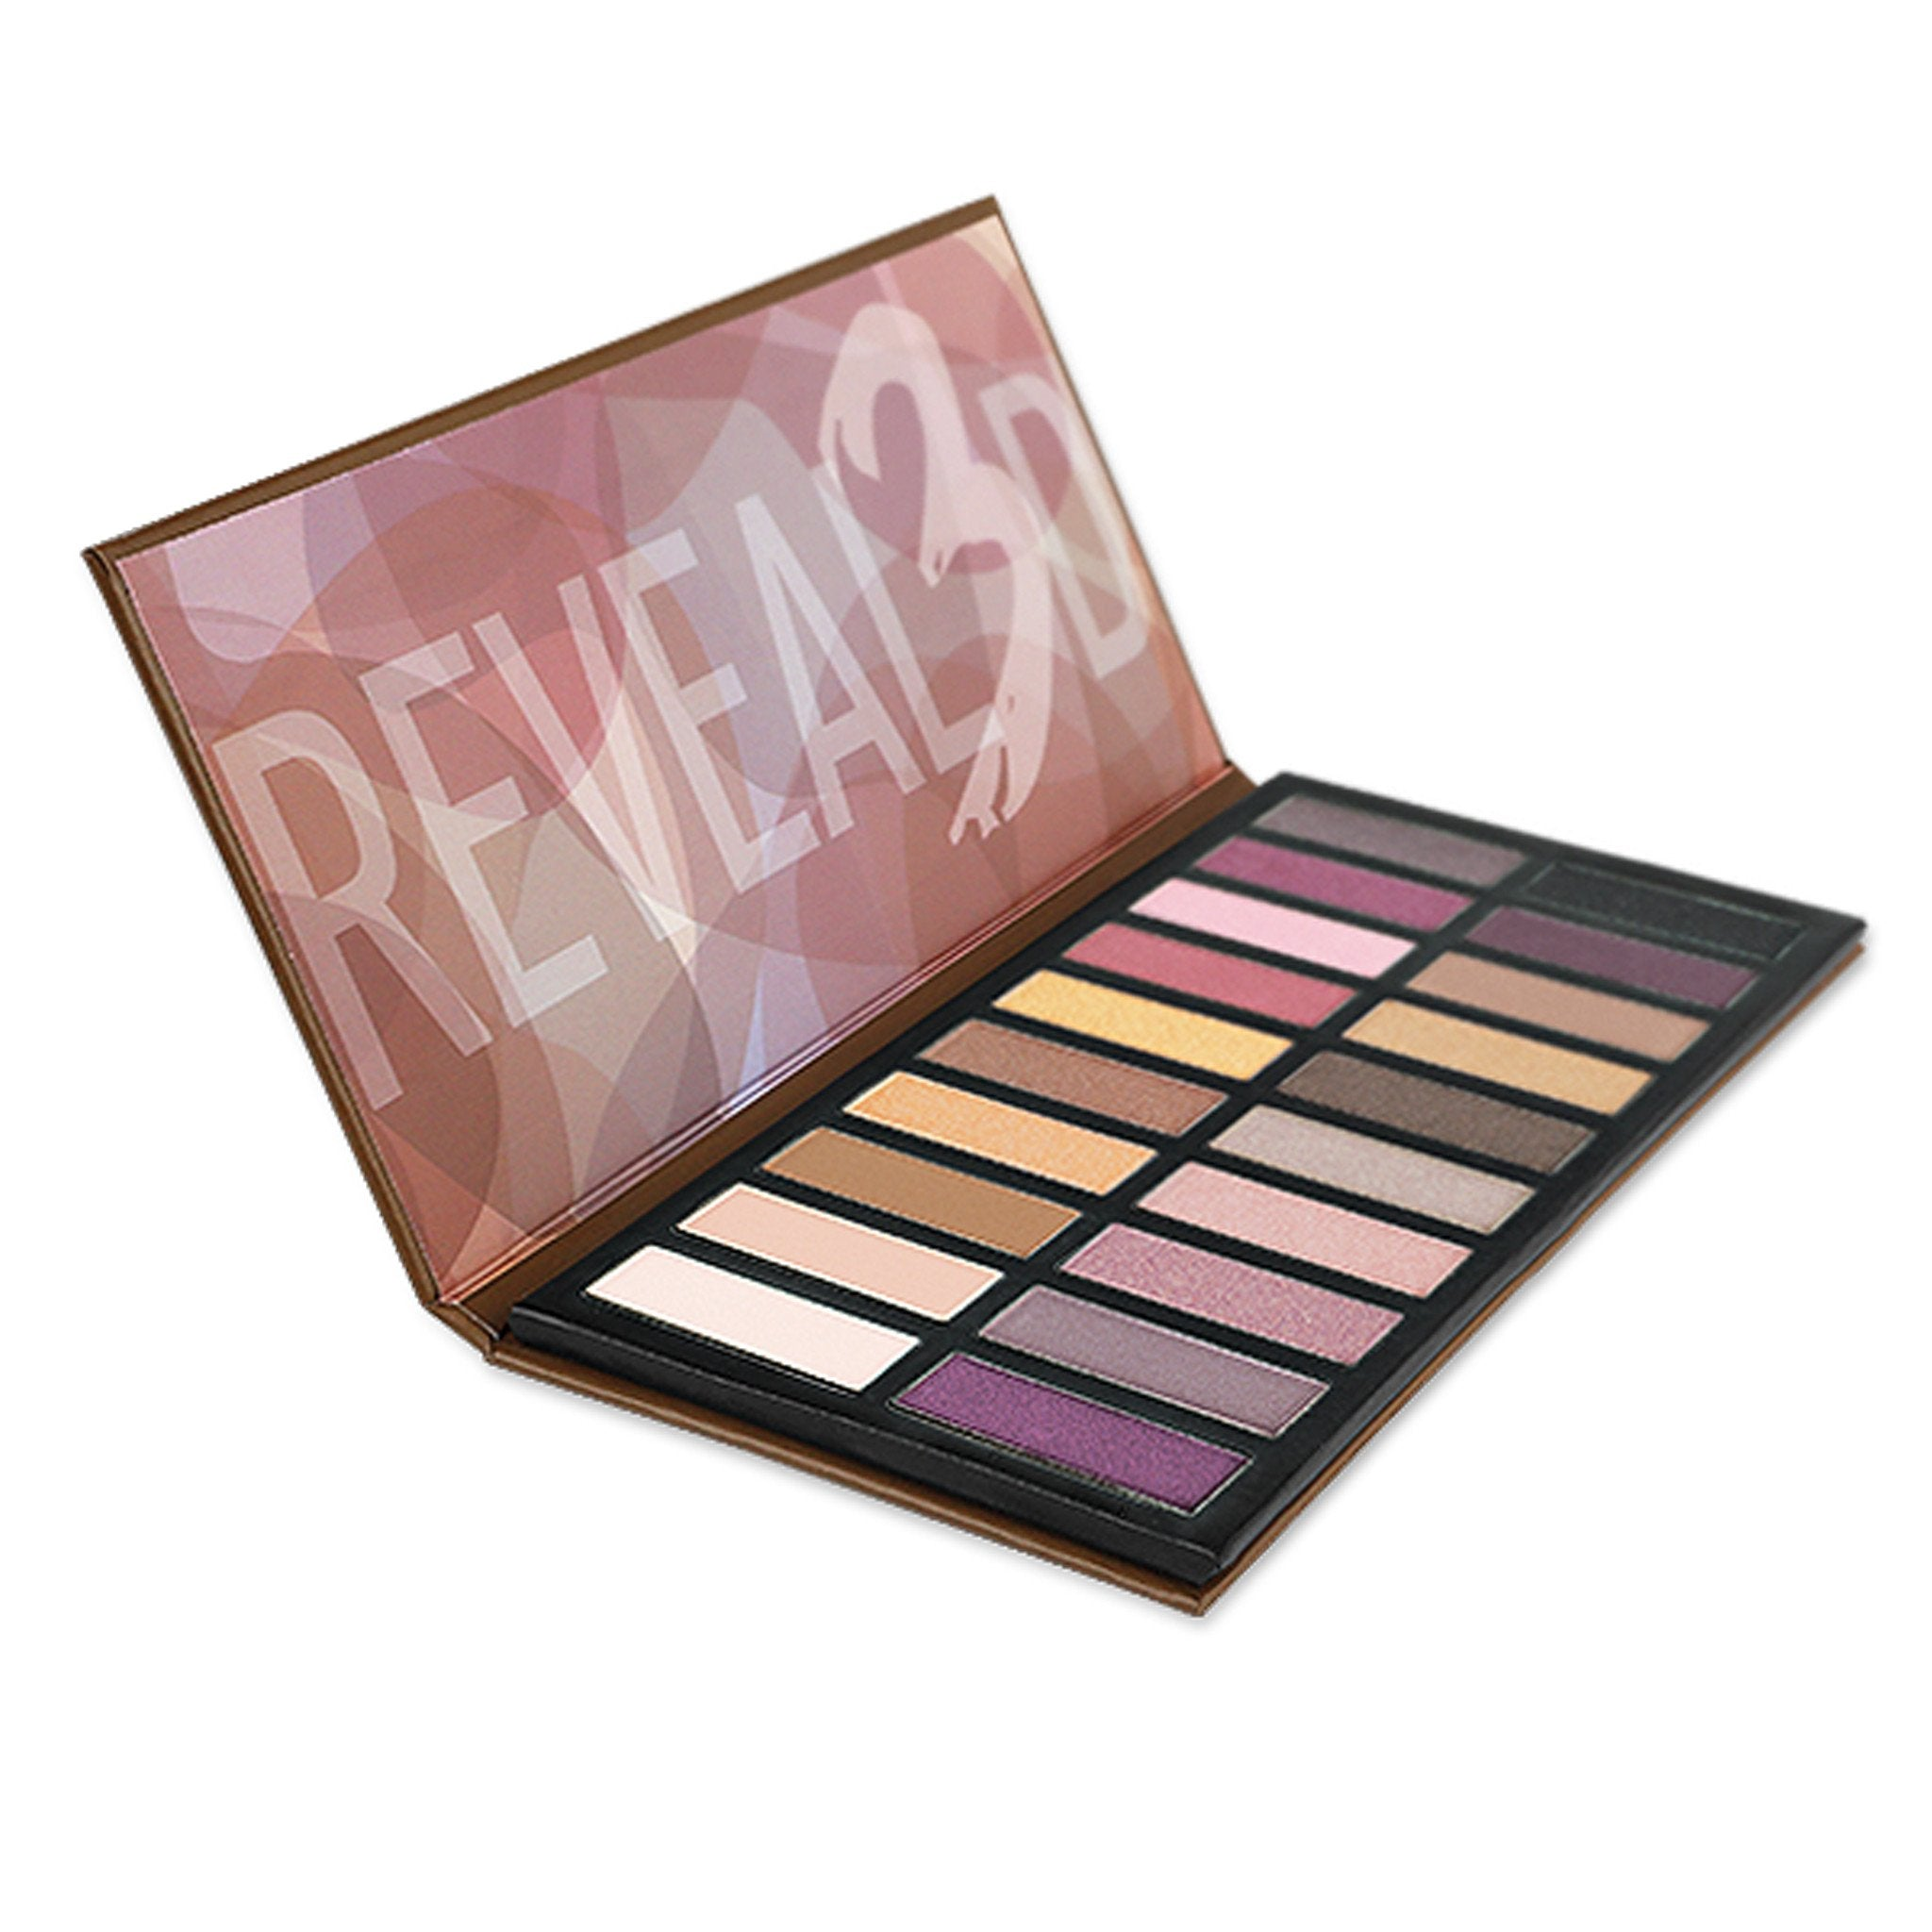 Revealed 3 Eyeshadow Palette